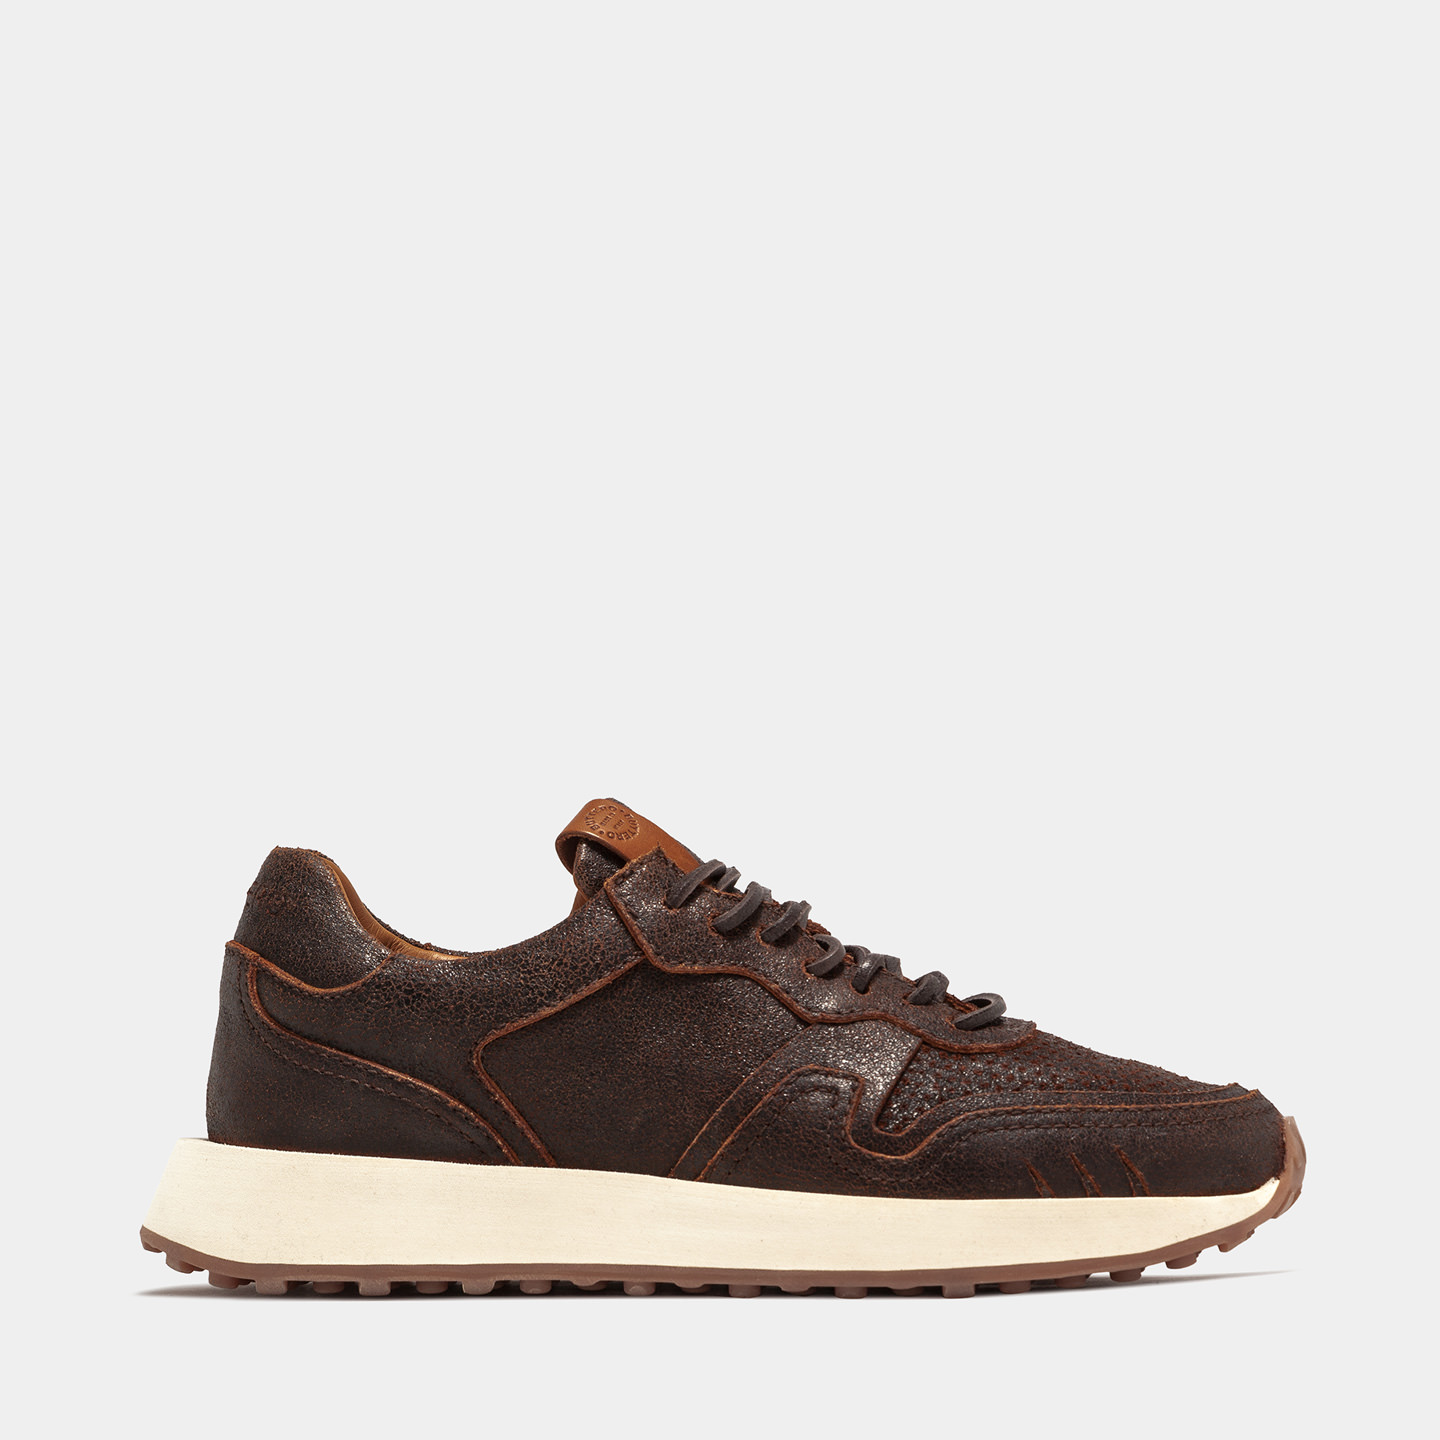 BUTTERO: FUTURA SNEAKERS IN DARK BROWN CRACKLE EFFECT LEATHER